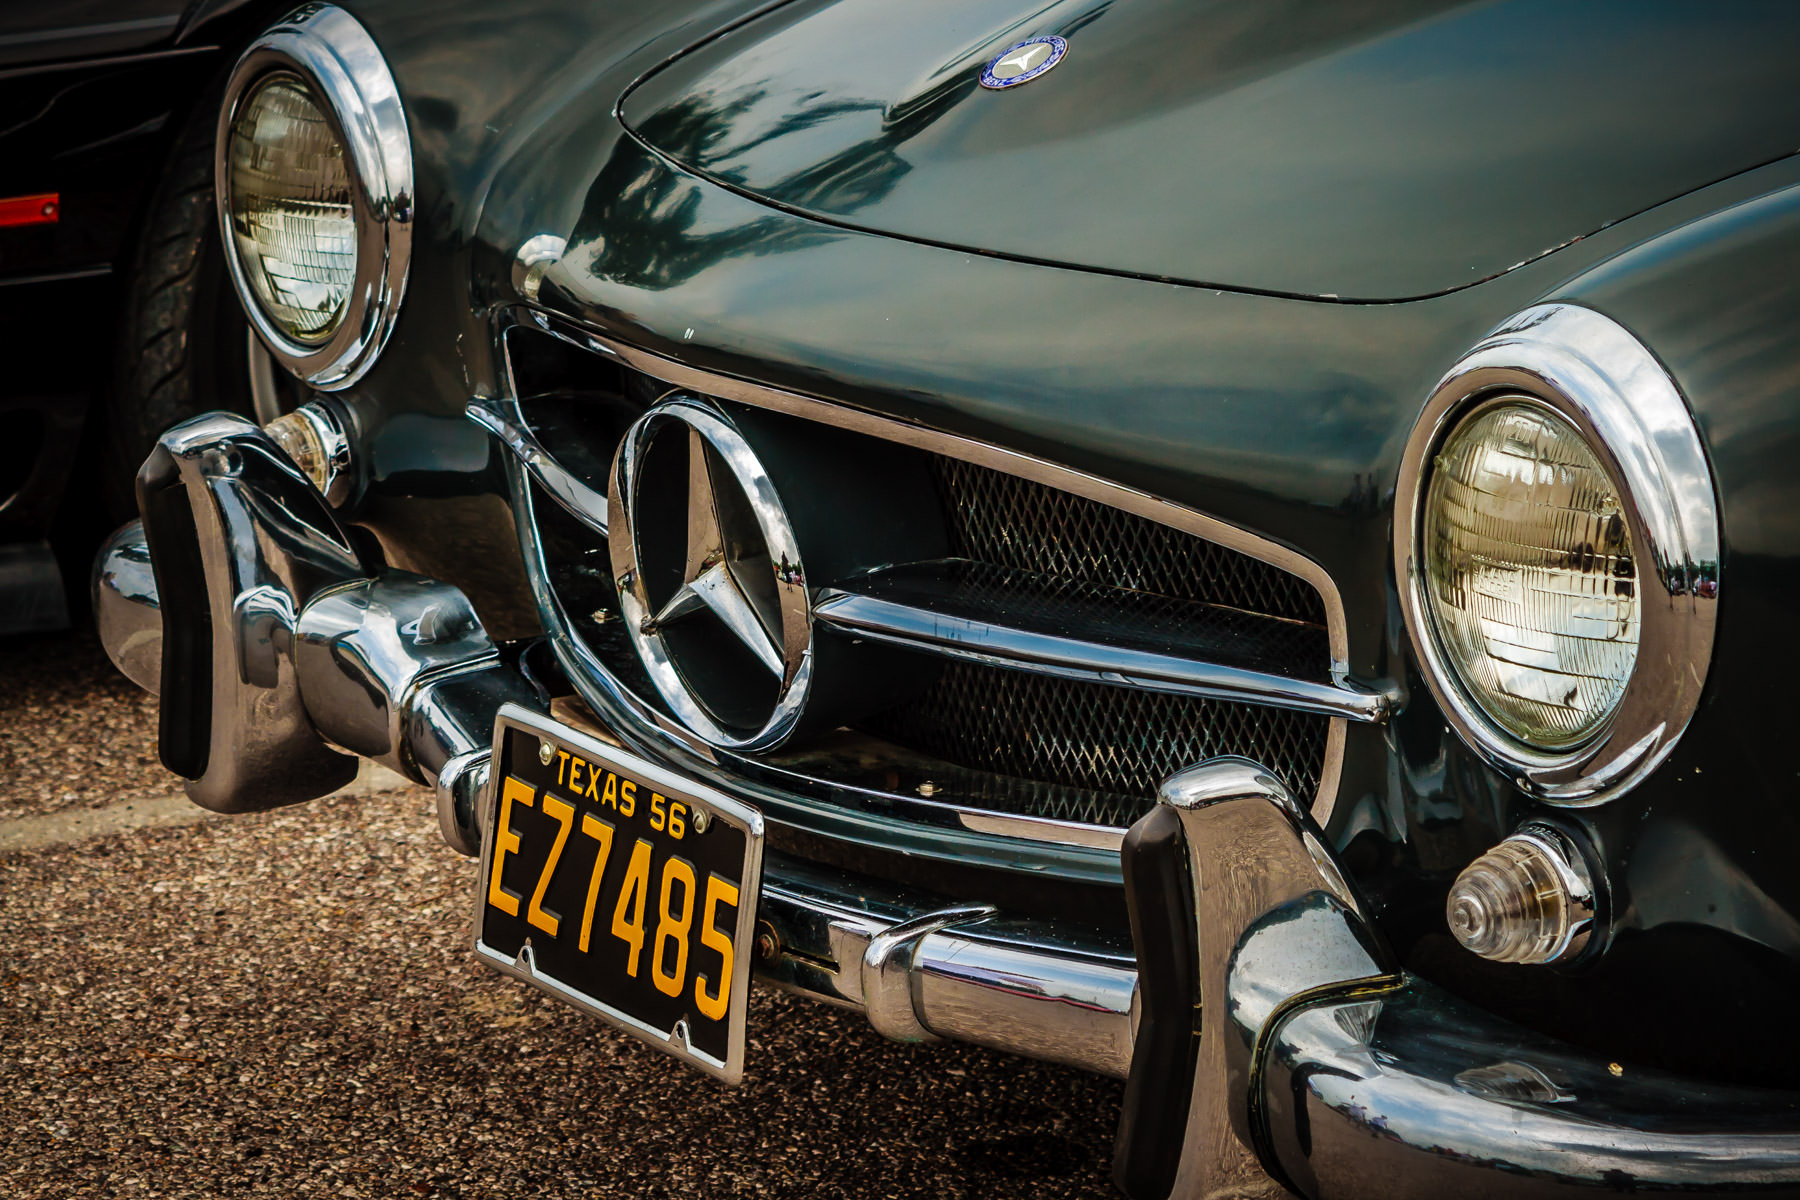 A classic Mercedes-Benz spotted somewhere in Dallas.